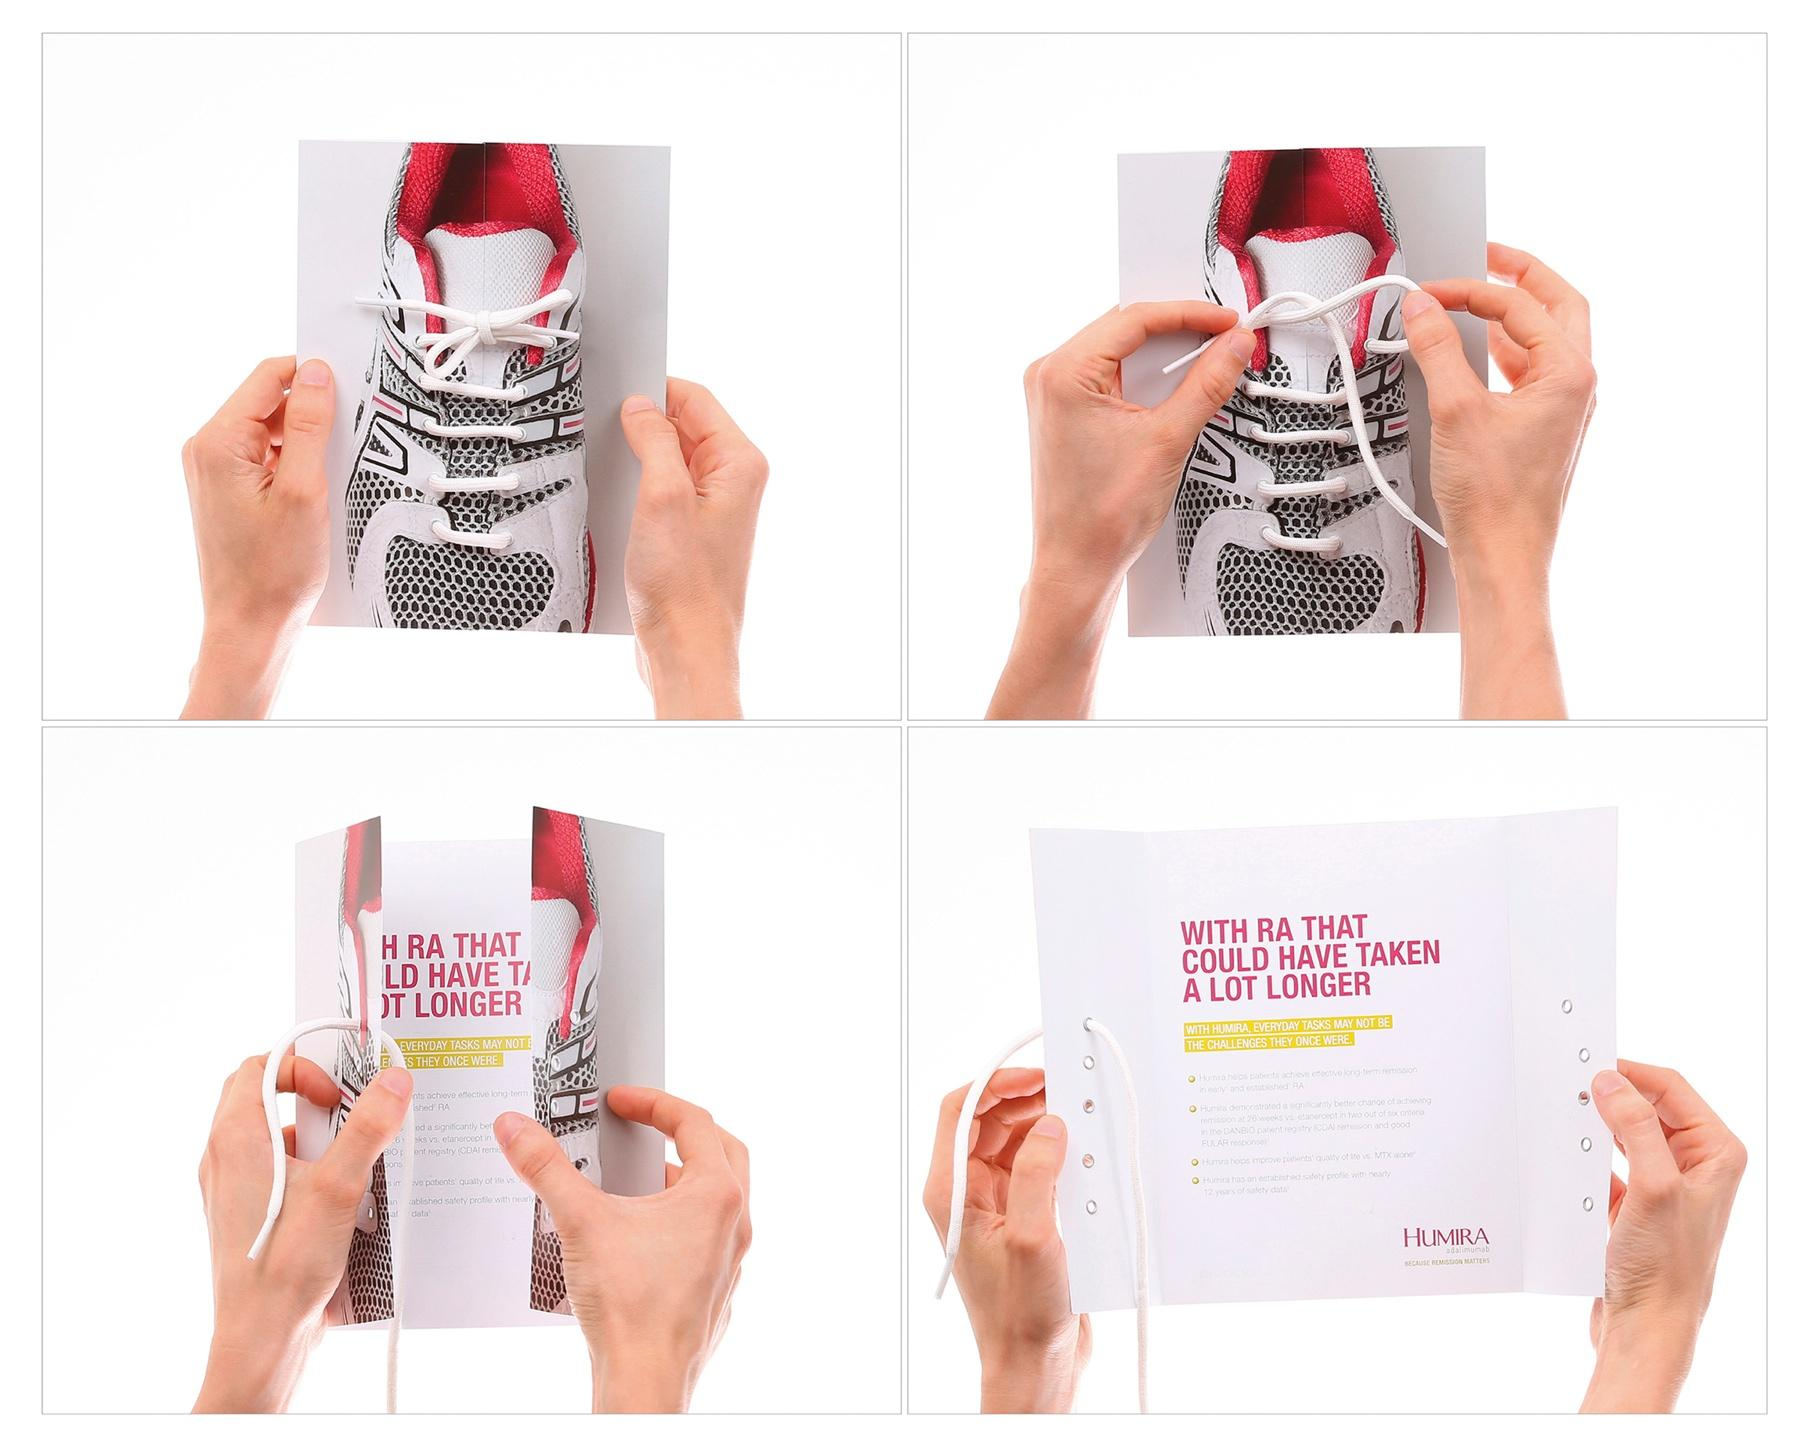 Humira Direct Ad -  Shoelace mailer